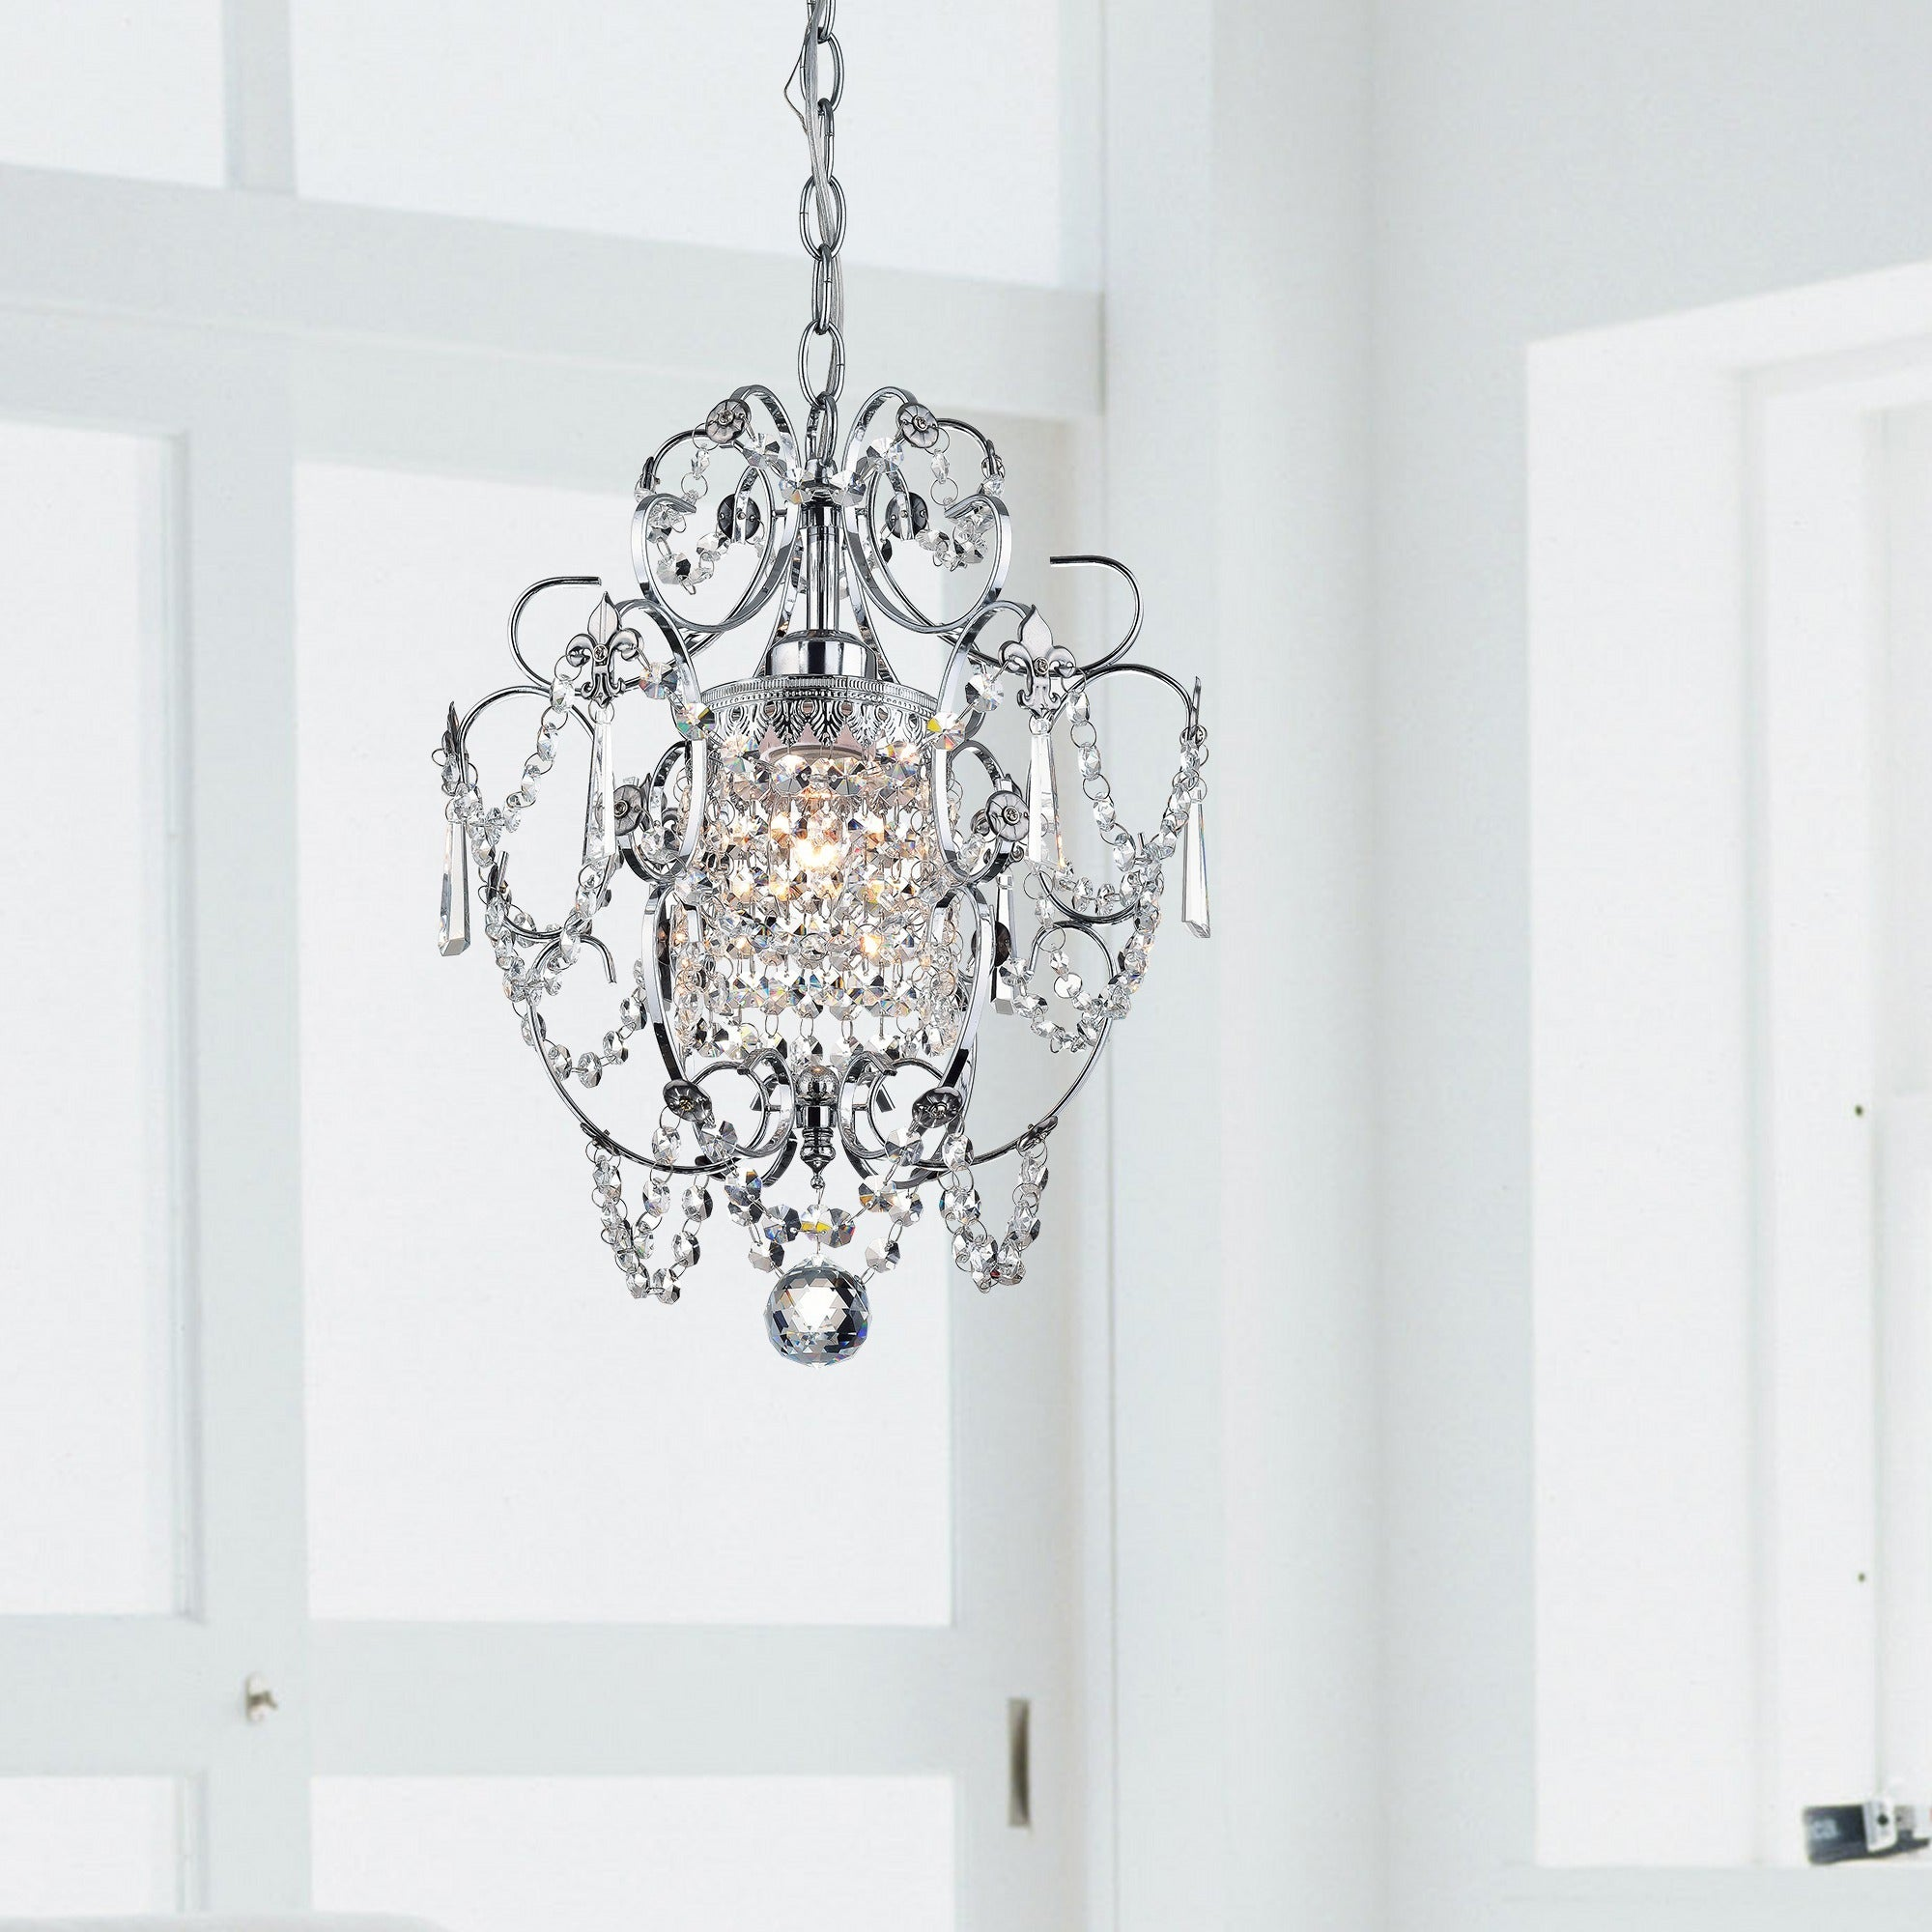 The lighting store chrome finish metalcrystal chandelier free the lighting store chrome finish metalcrystal chandelier free shipping today overstock 12114025 arubaitofo Image collections